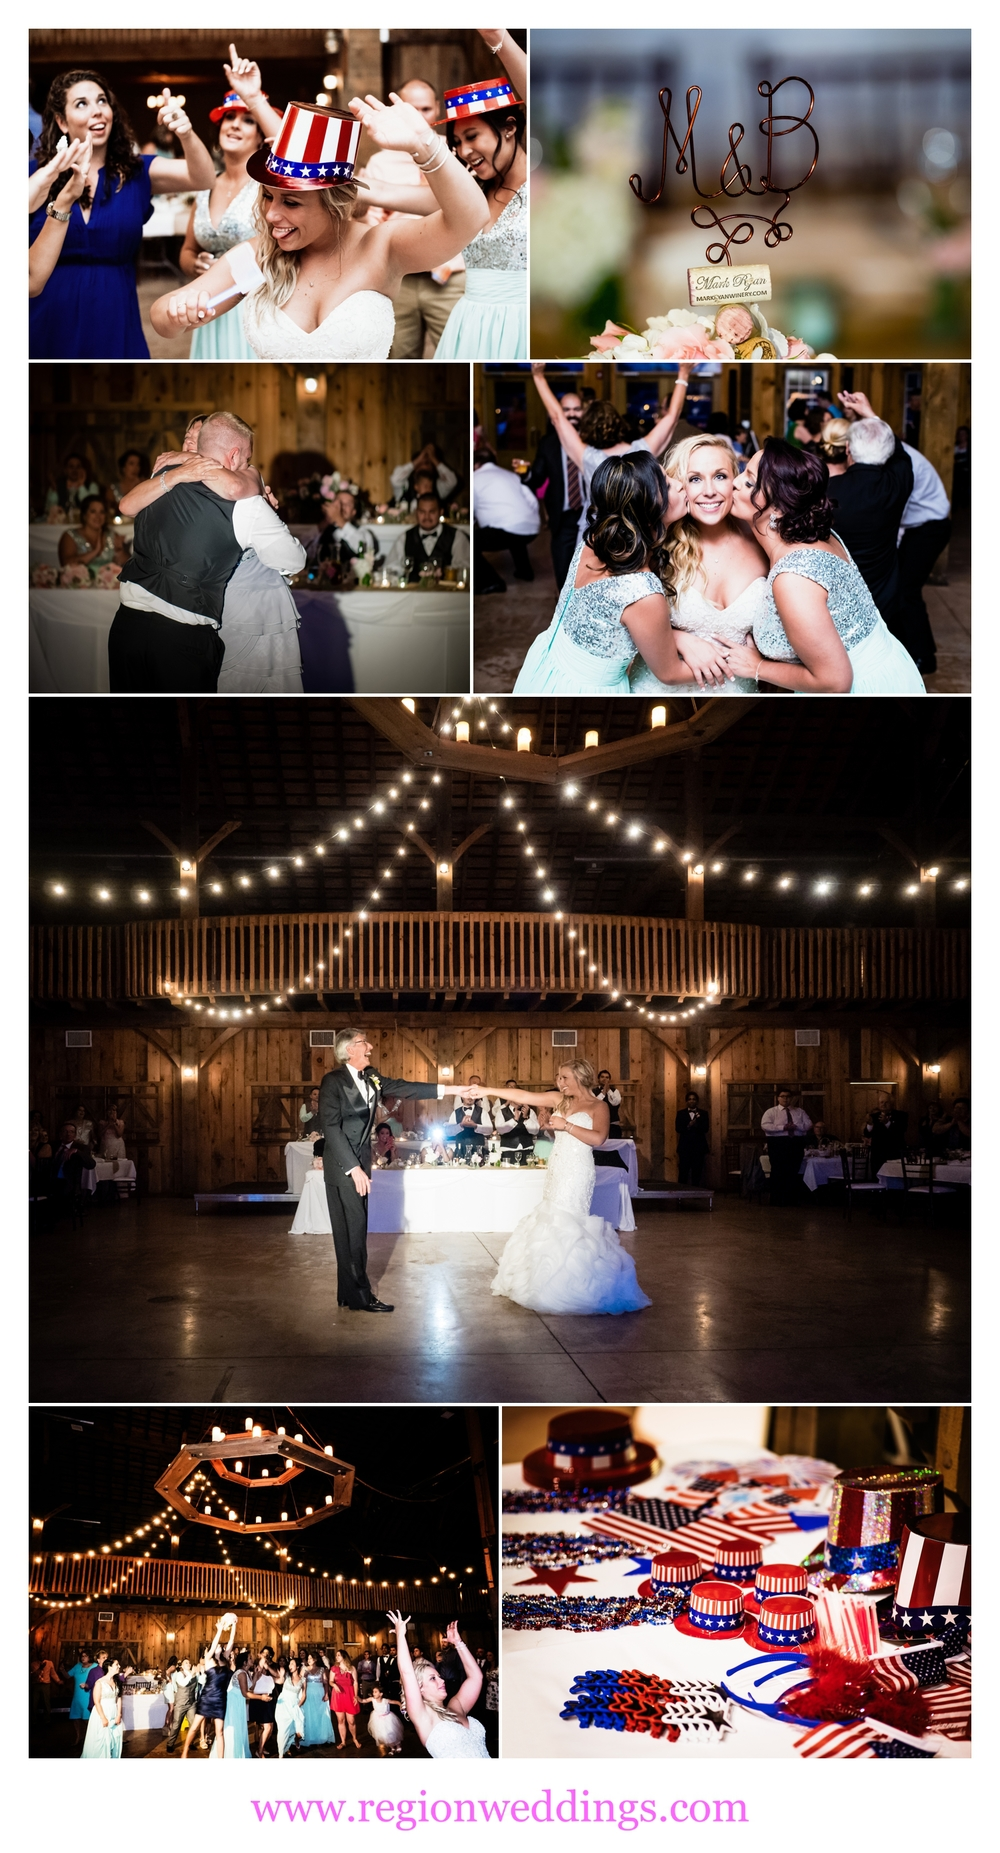 A barn wedding at County Line Orchard in Hobart, Indiana.